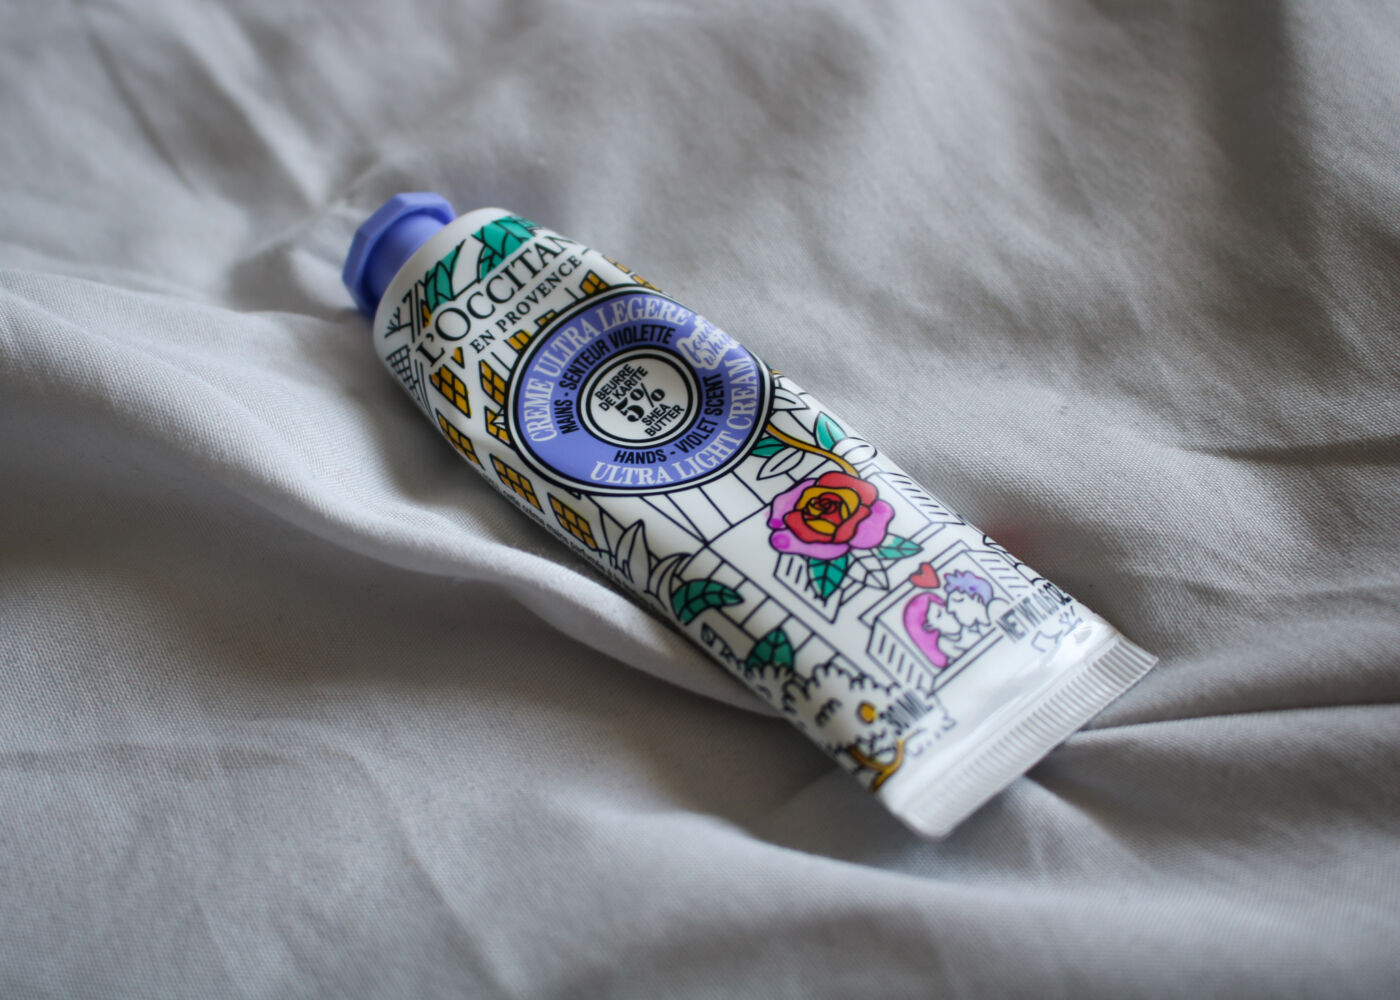 L'Occitane Shea Butter Ultra Light Hand Cream Violet Scent at-home beauty